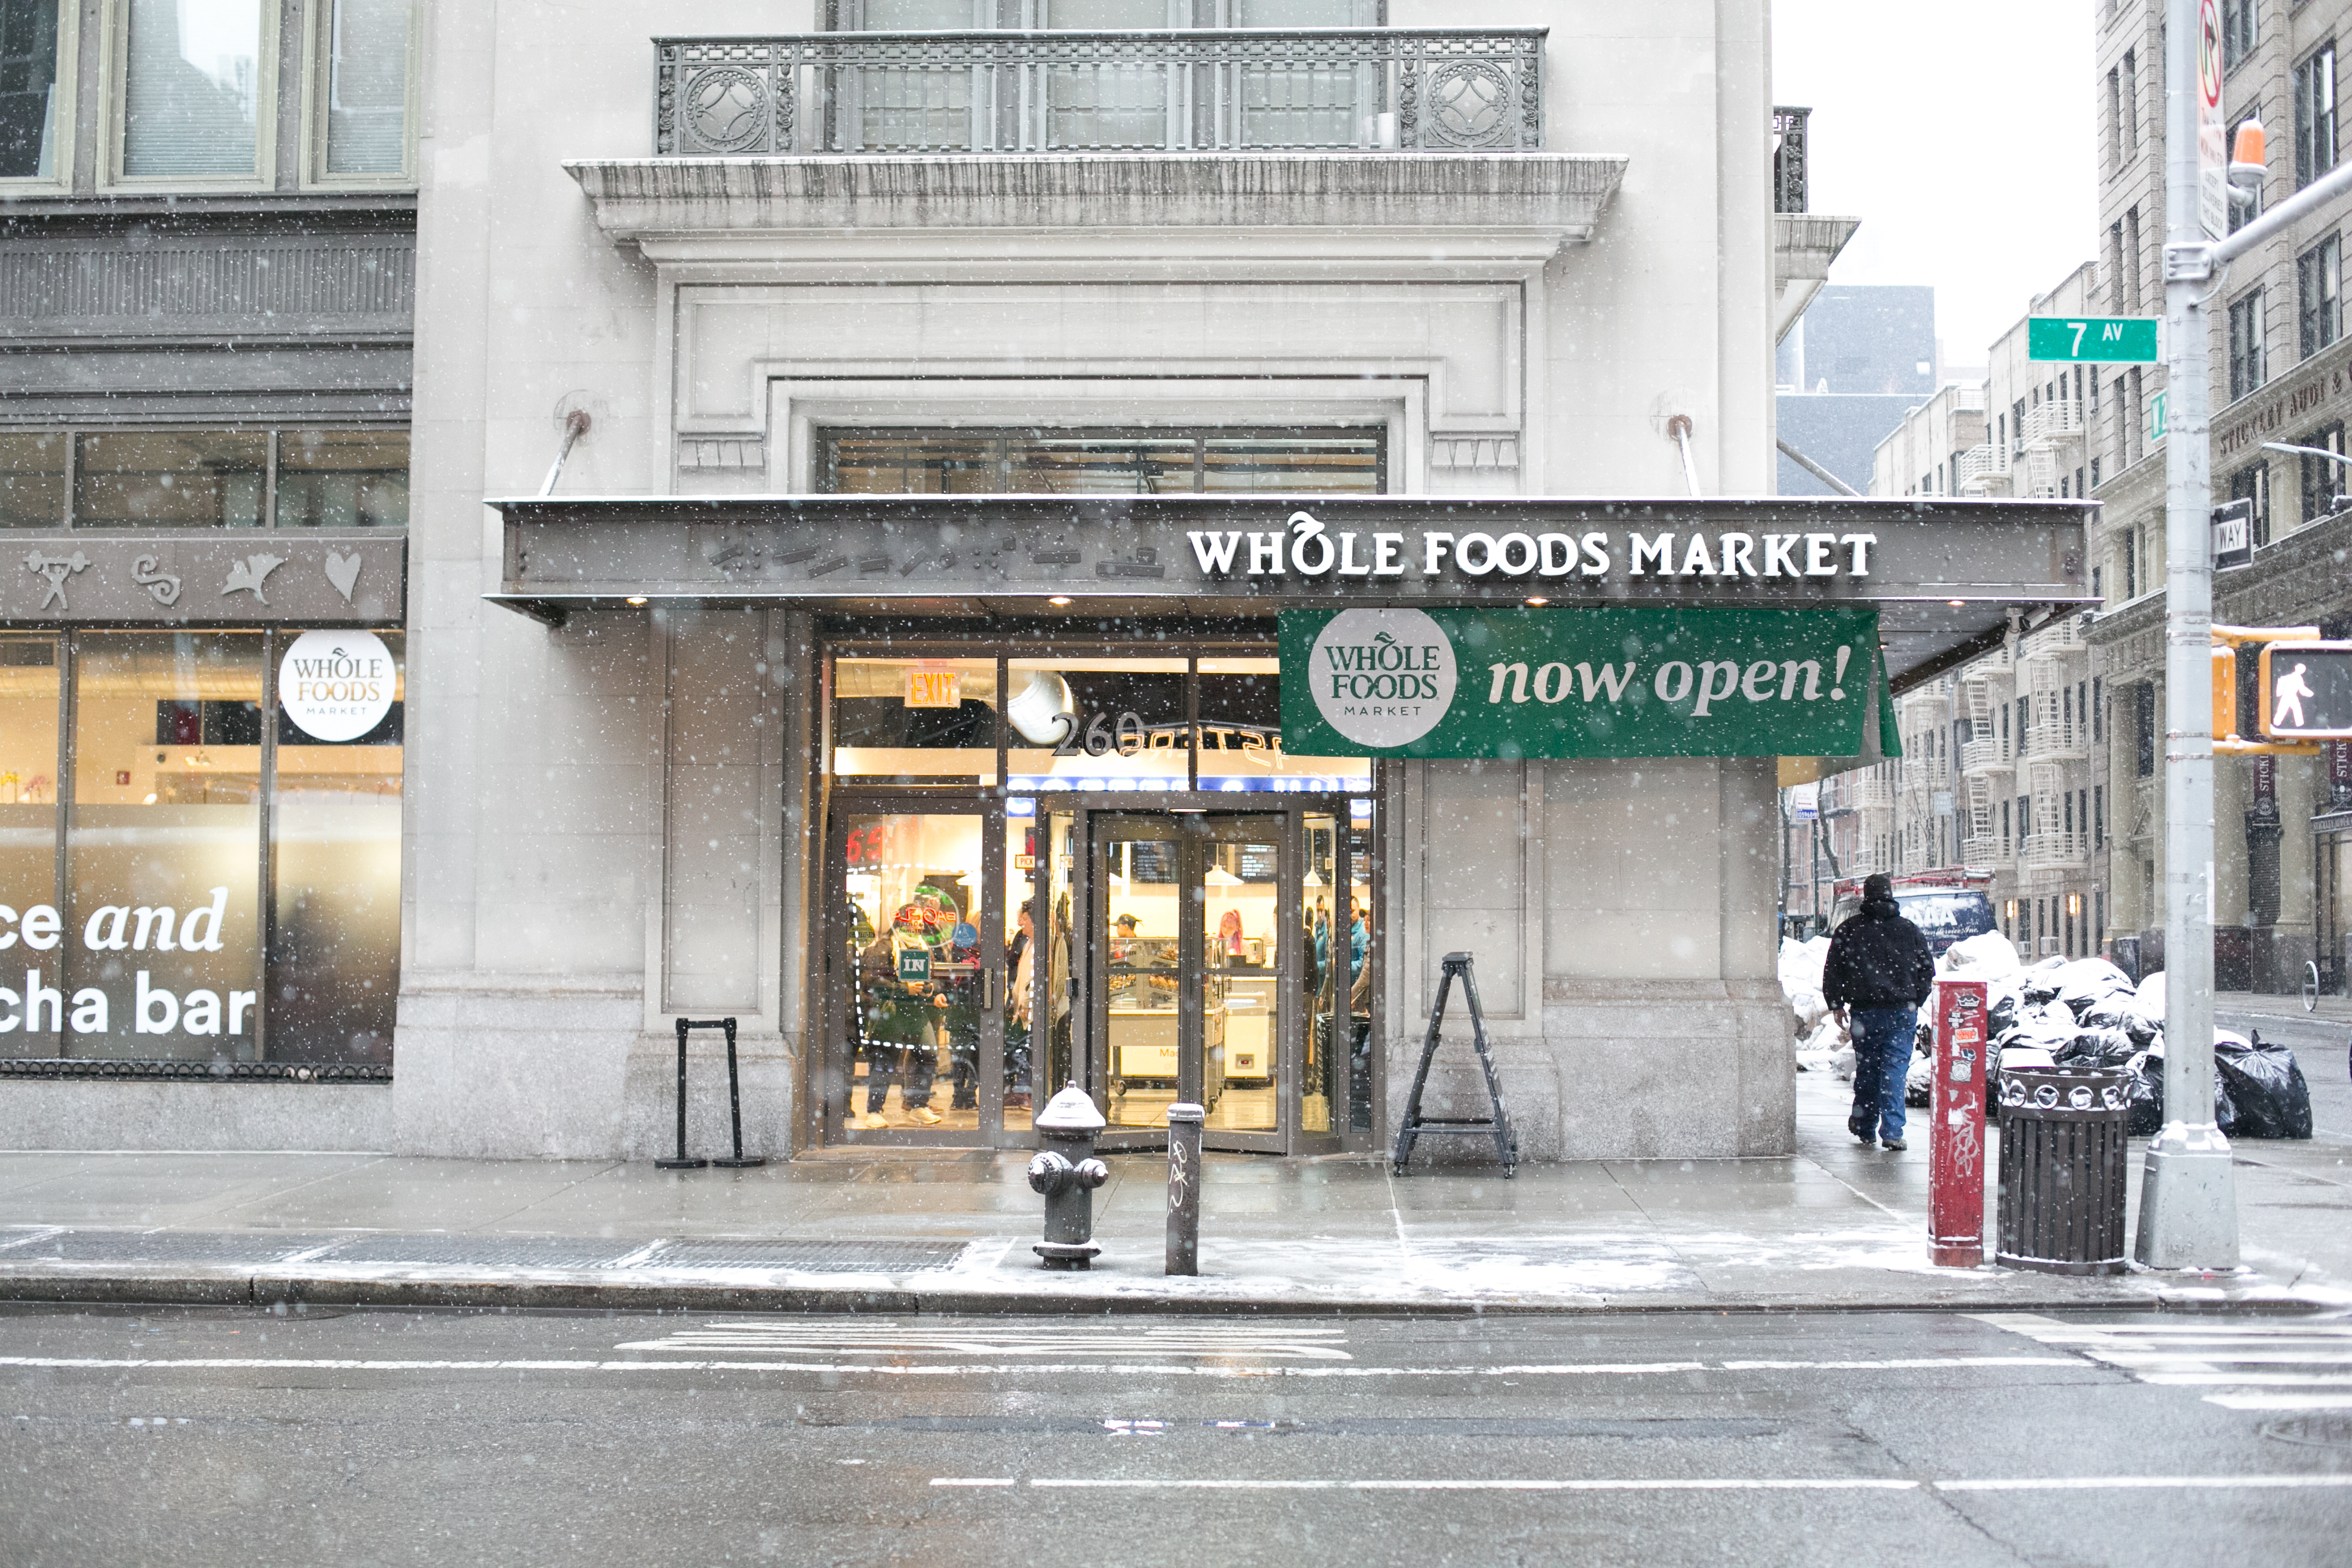 Whole Foods Market Daily Shop Opens in Chelsea